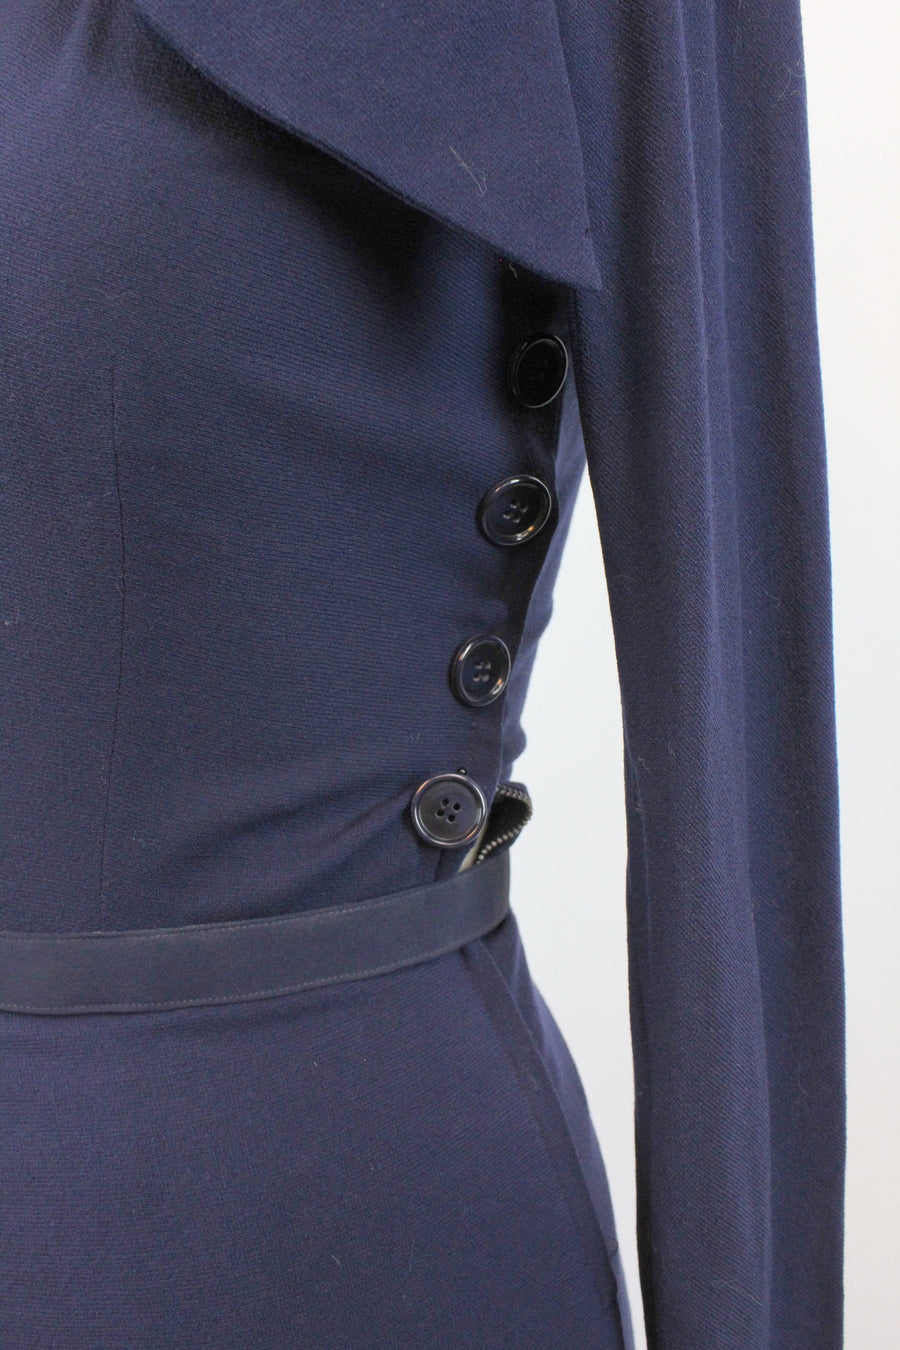 1940s navy wool peplum dress knit medium  | vintage button dress | new in